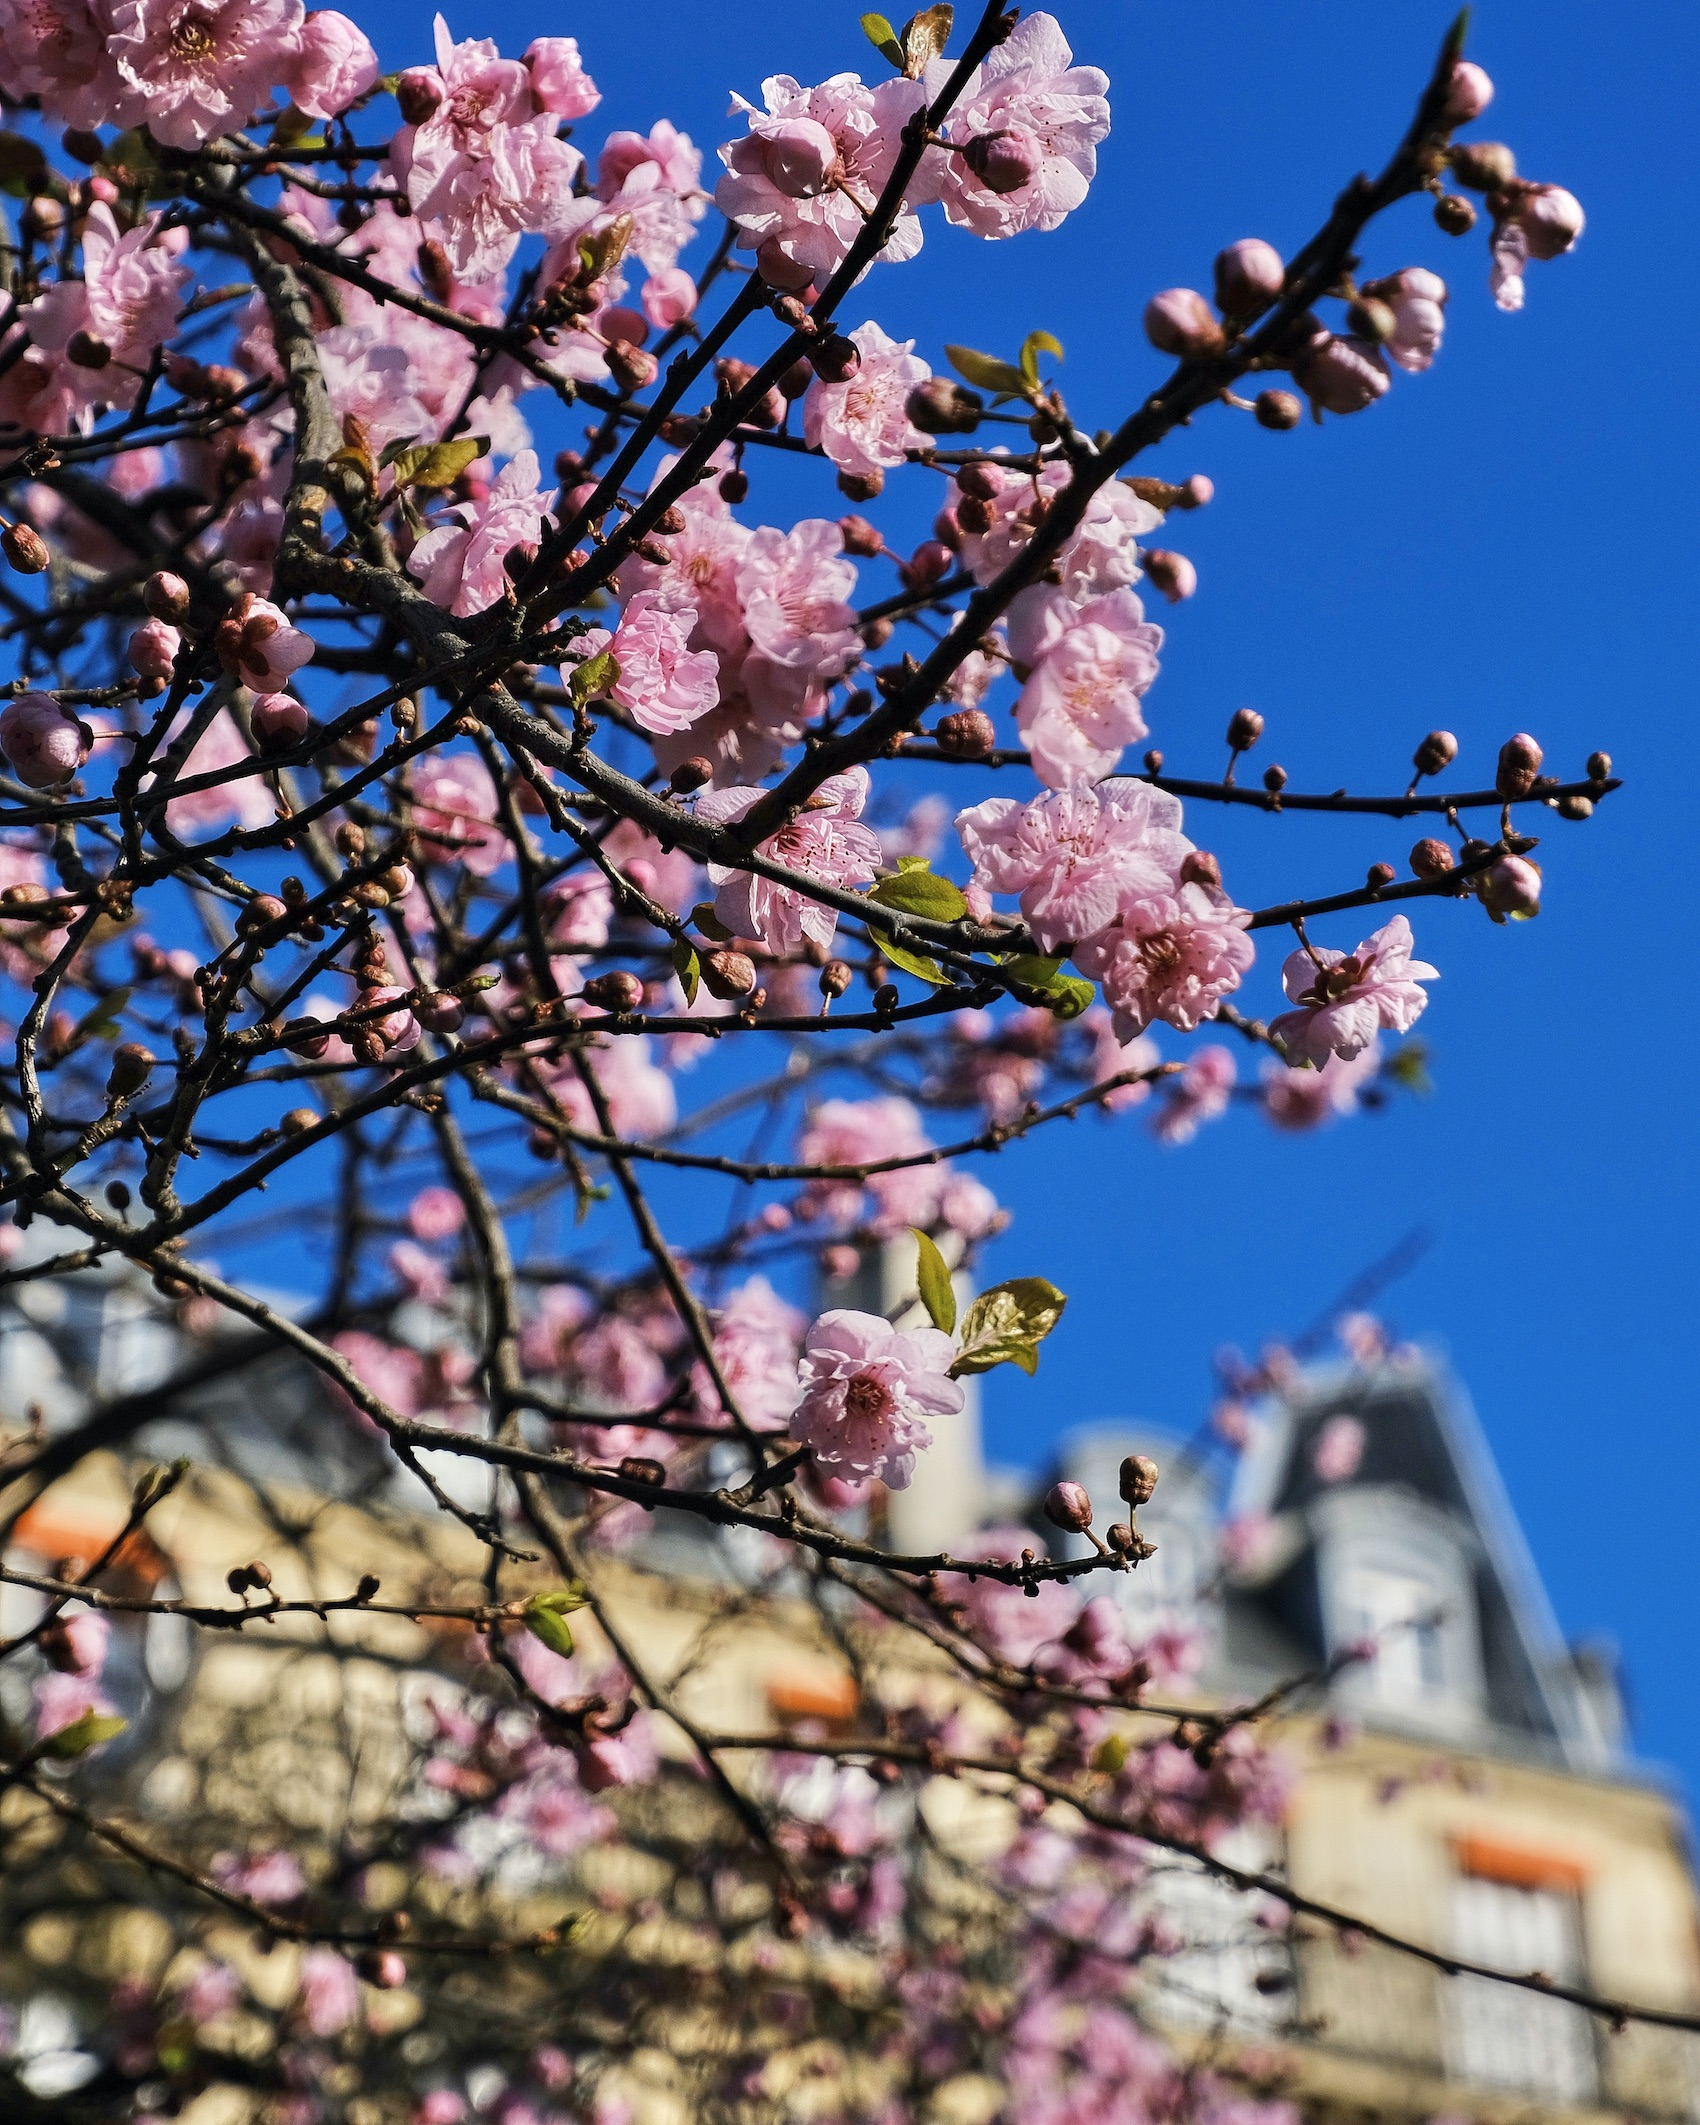 February Blooms in Paris